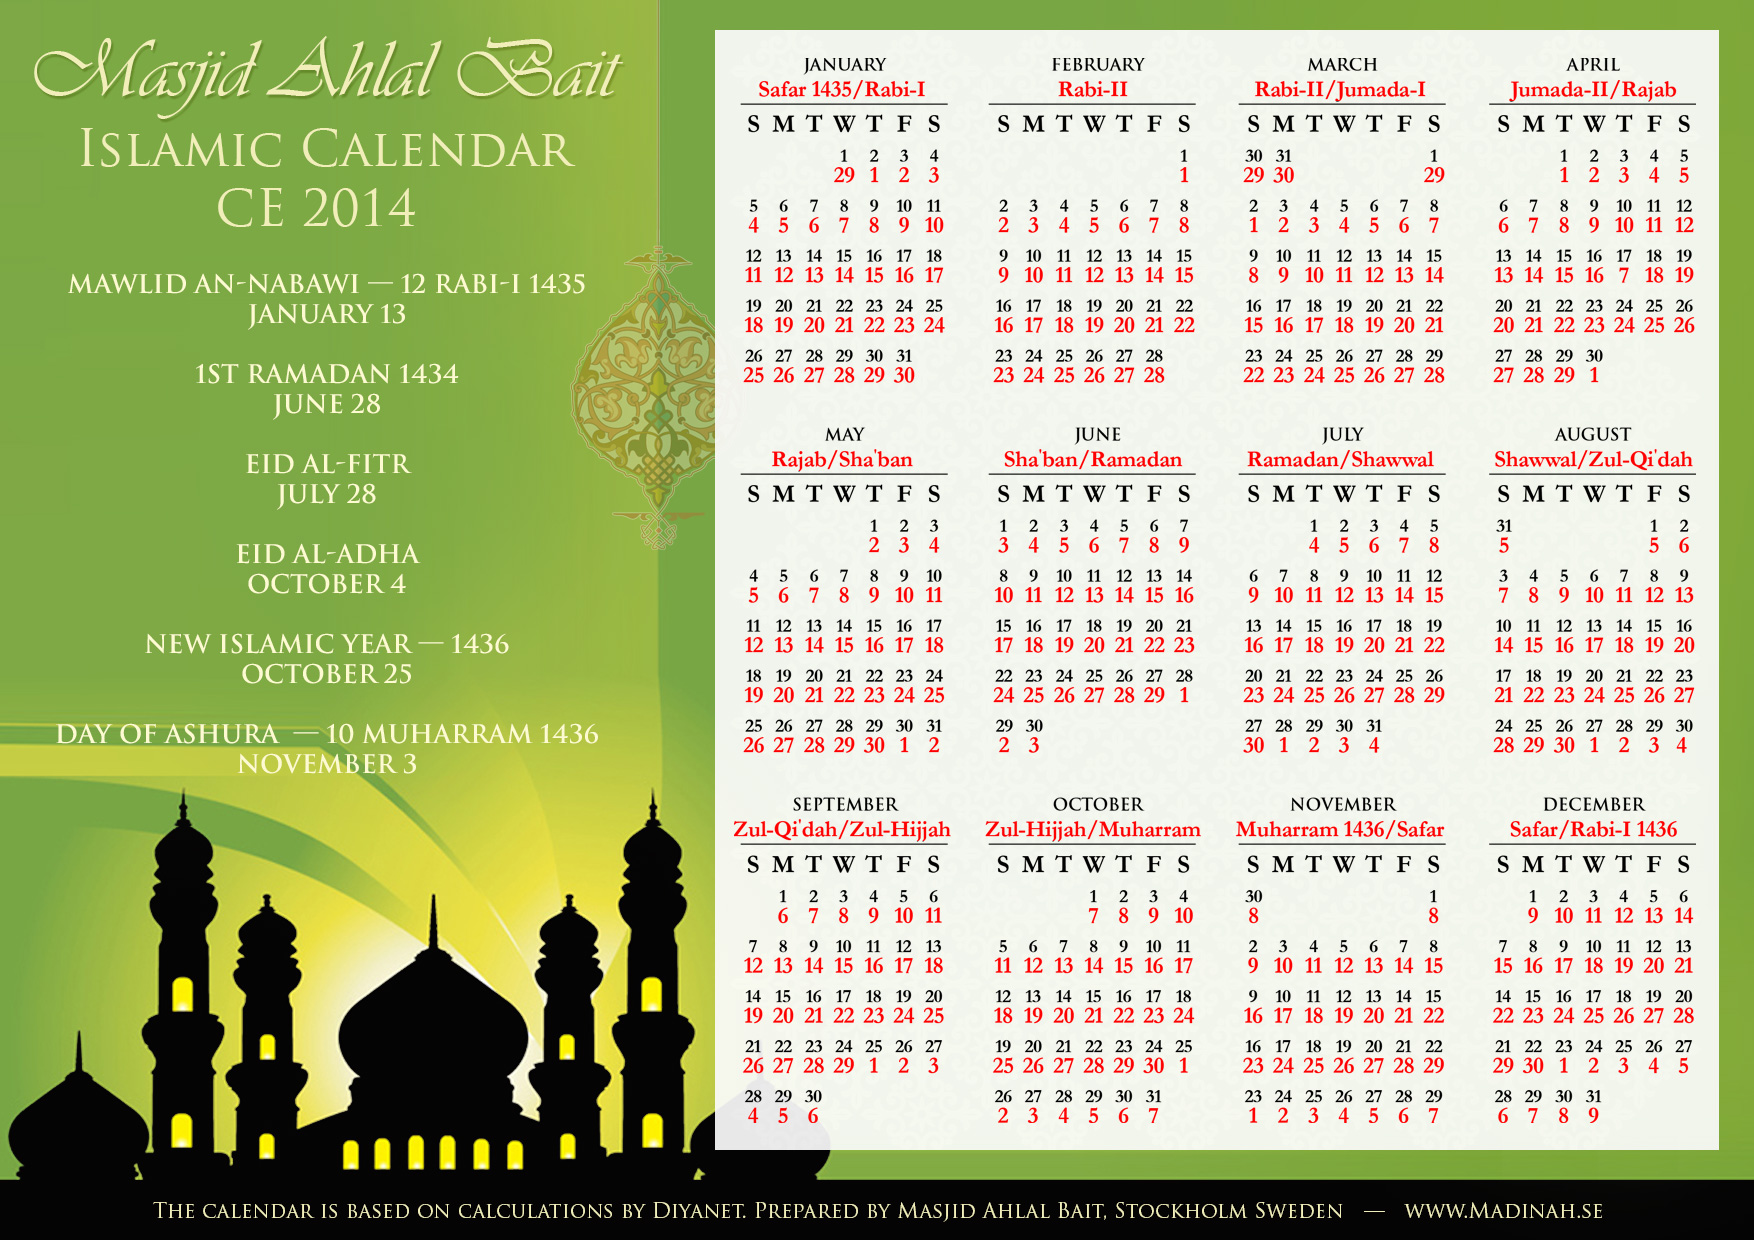 This Islamic Calendar for year 2014 is based on calculation by Diyanet ...